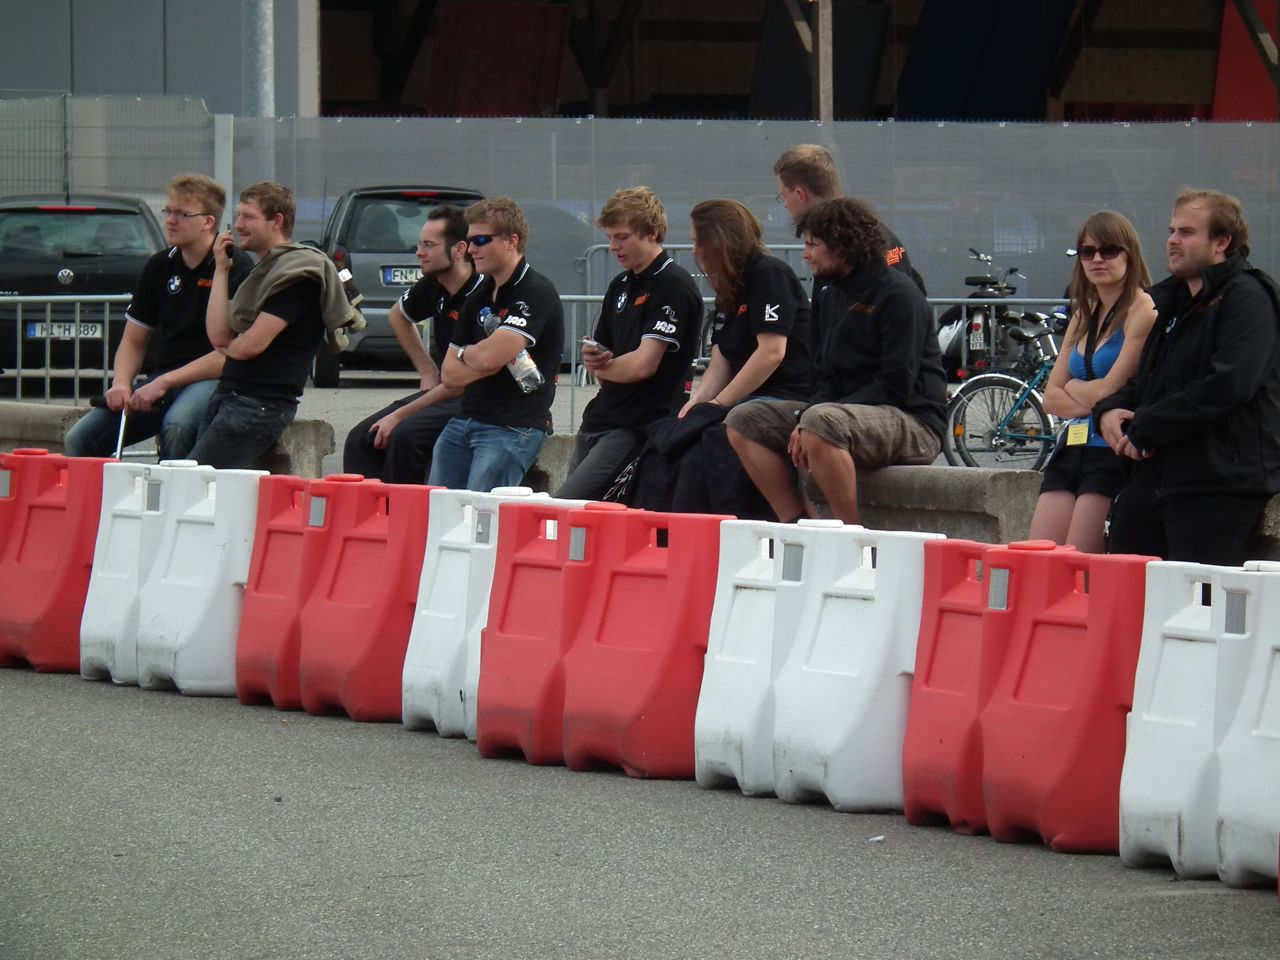 zf_racecamp_201104